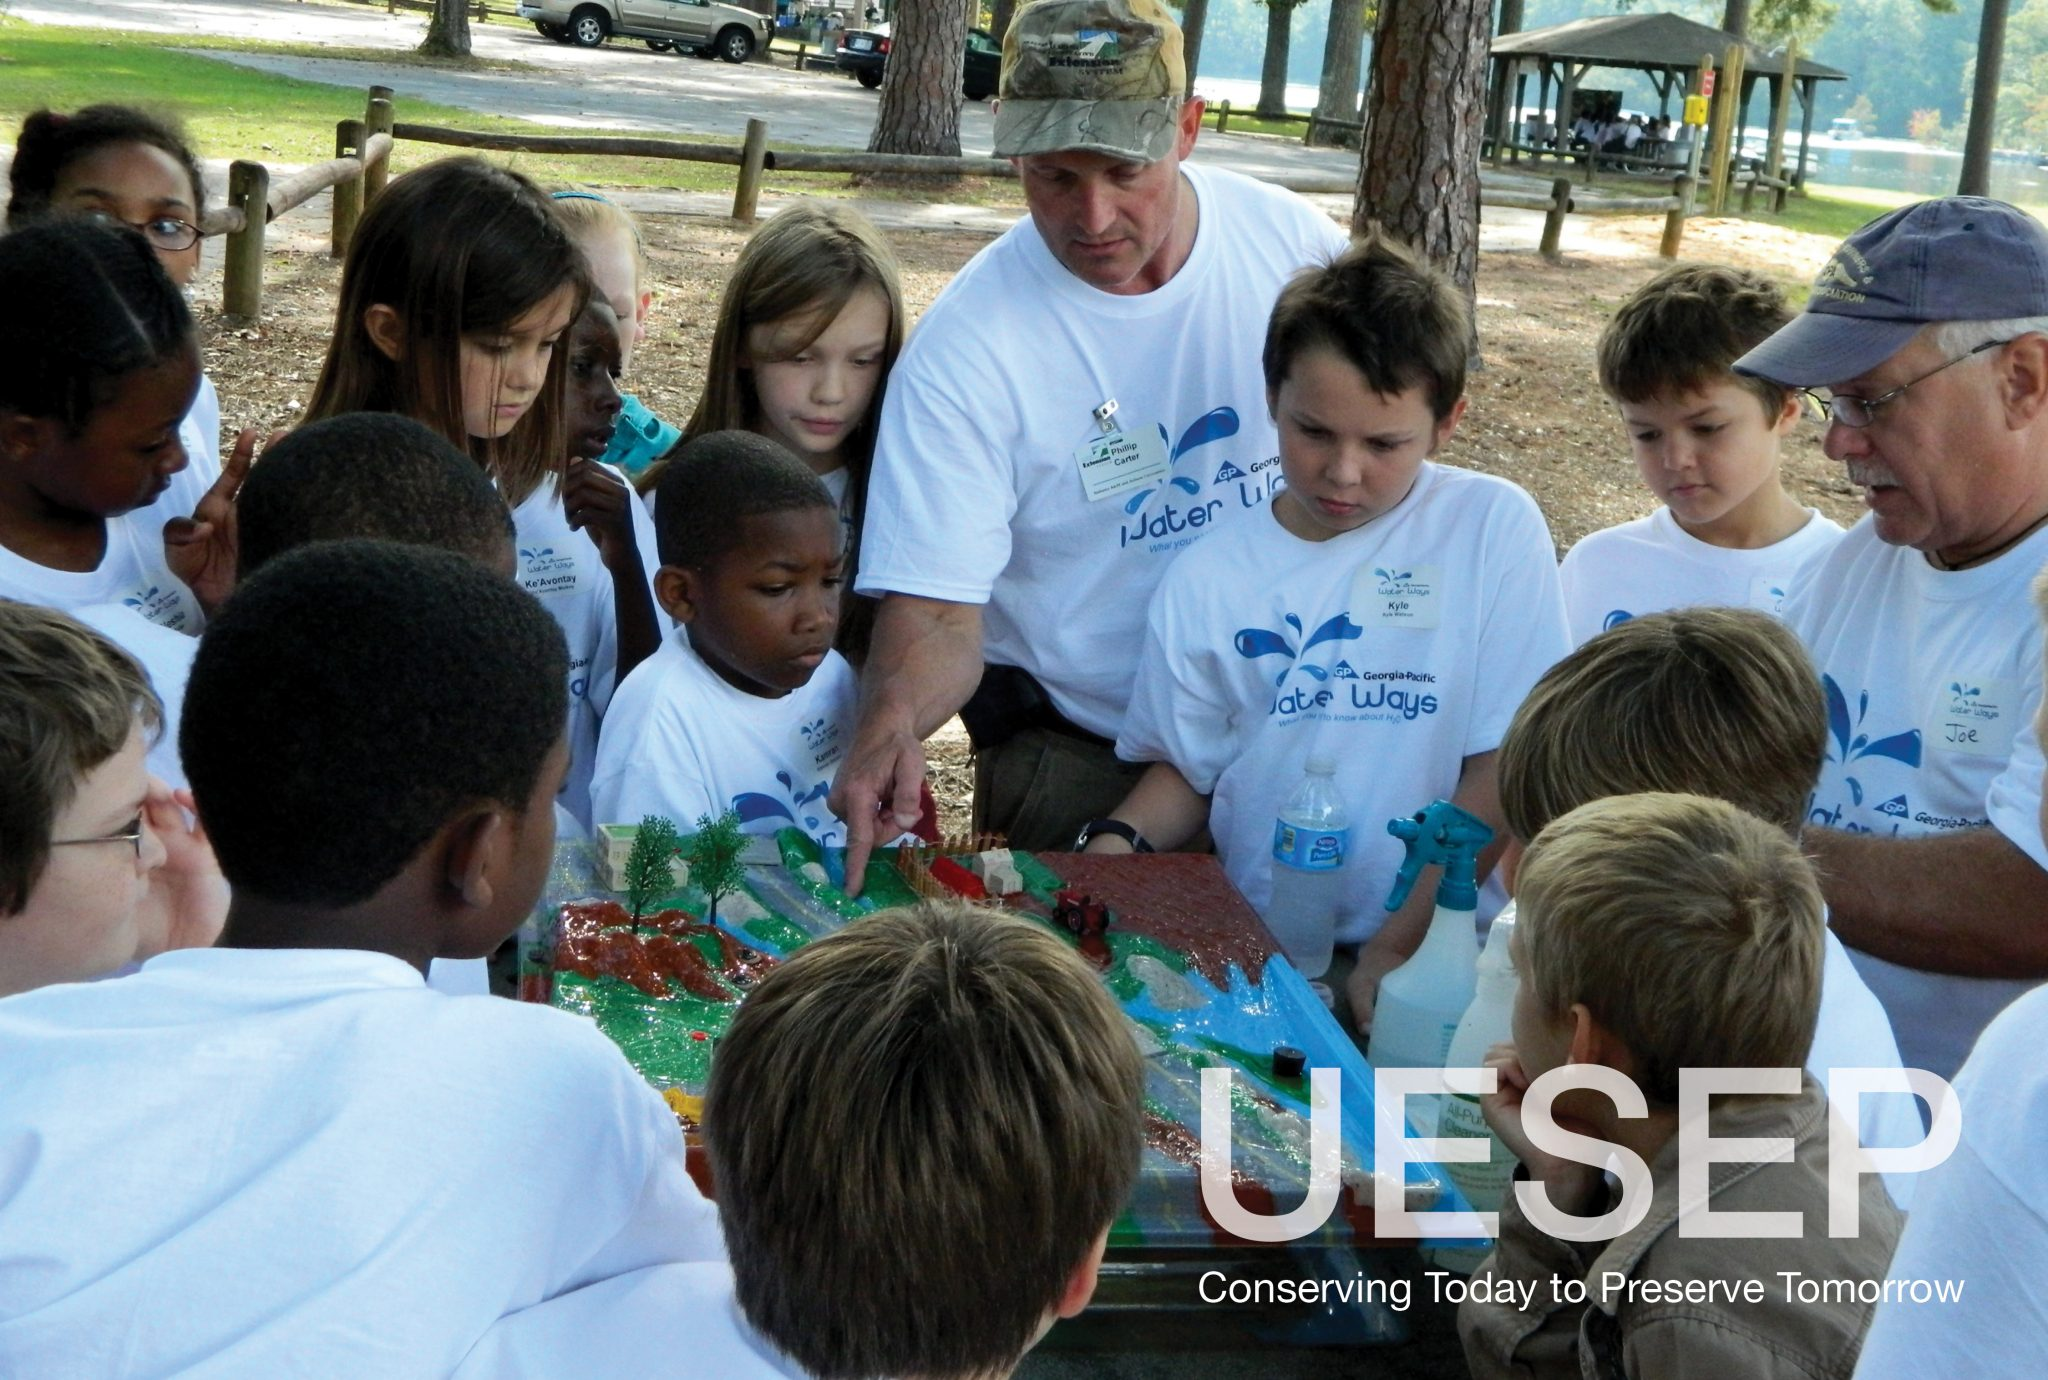 A group of elementary school aged children gather around a water cycle model